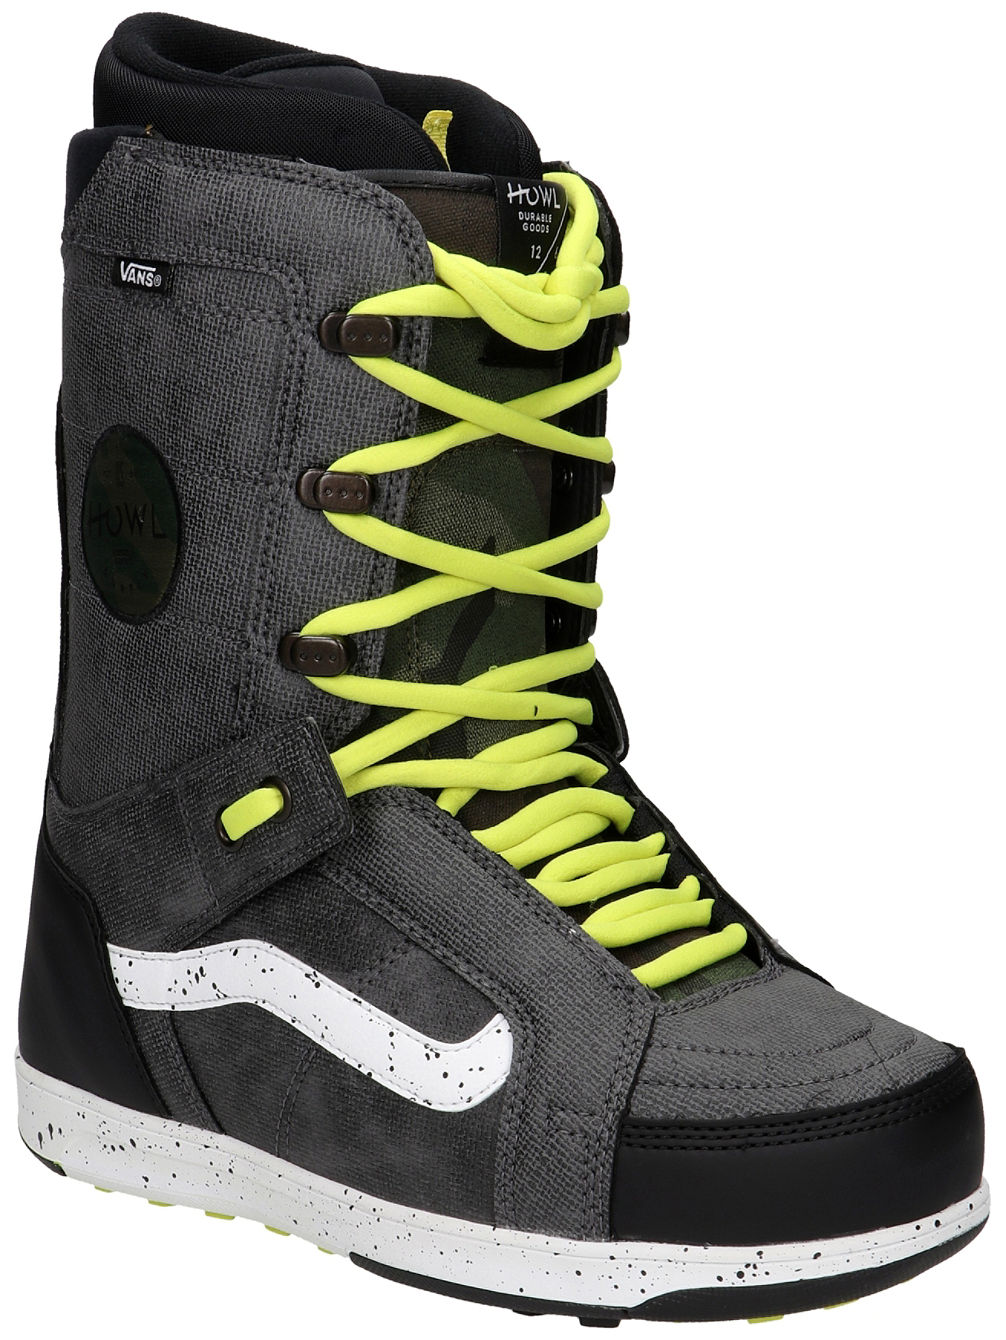 6099c940e4 Buy Vans Hi-Standard online at Blue Tomato